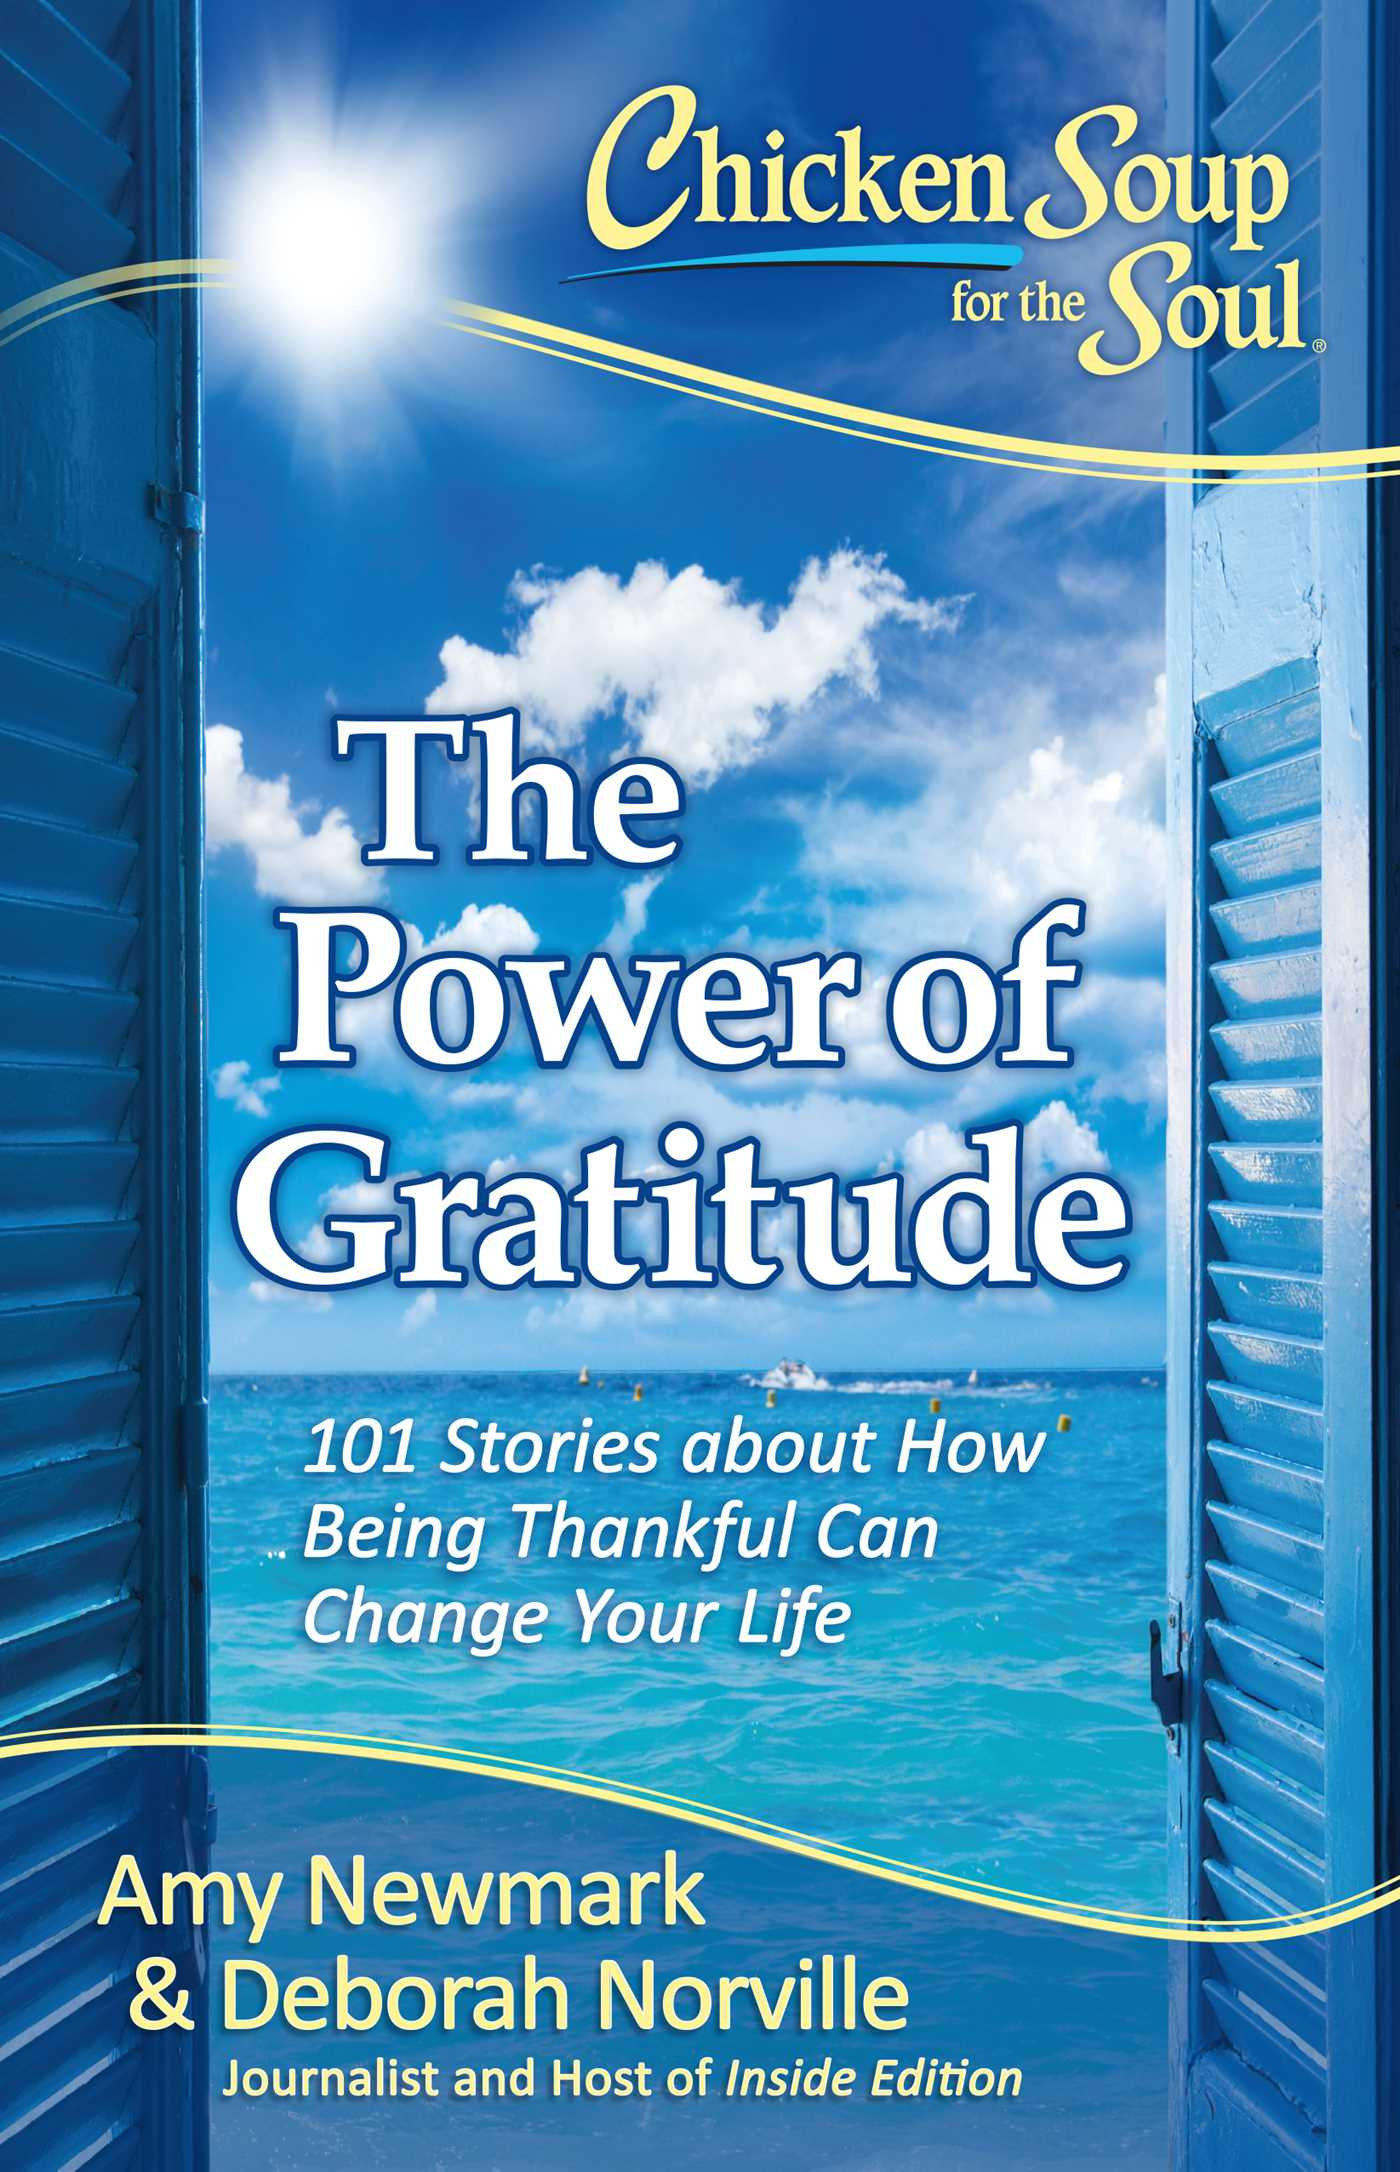 Chicken soup for the soul the power of gratitude 9781611592580 hr